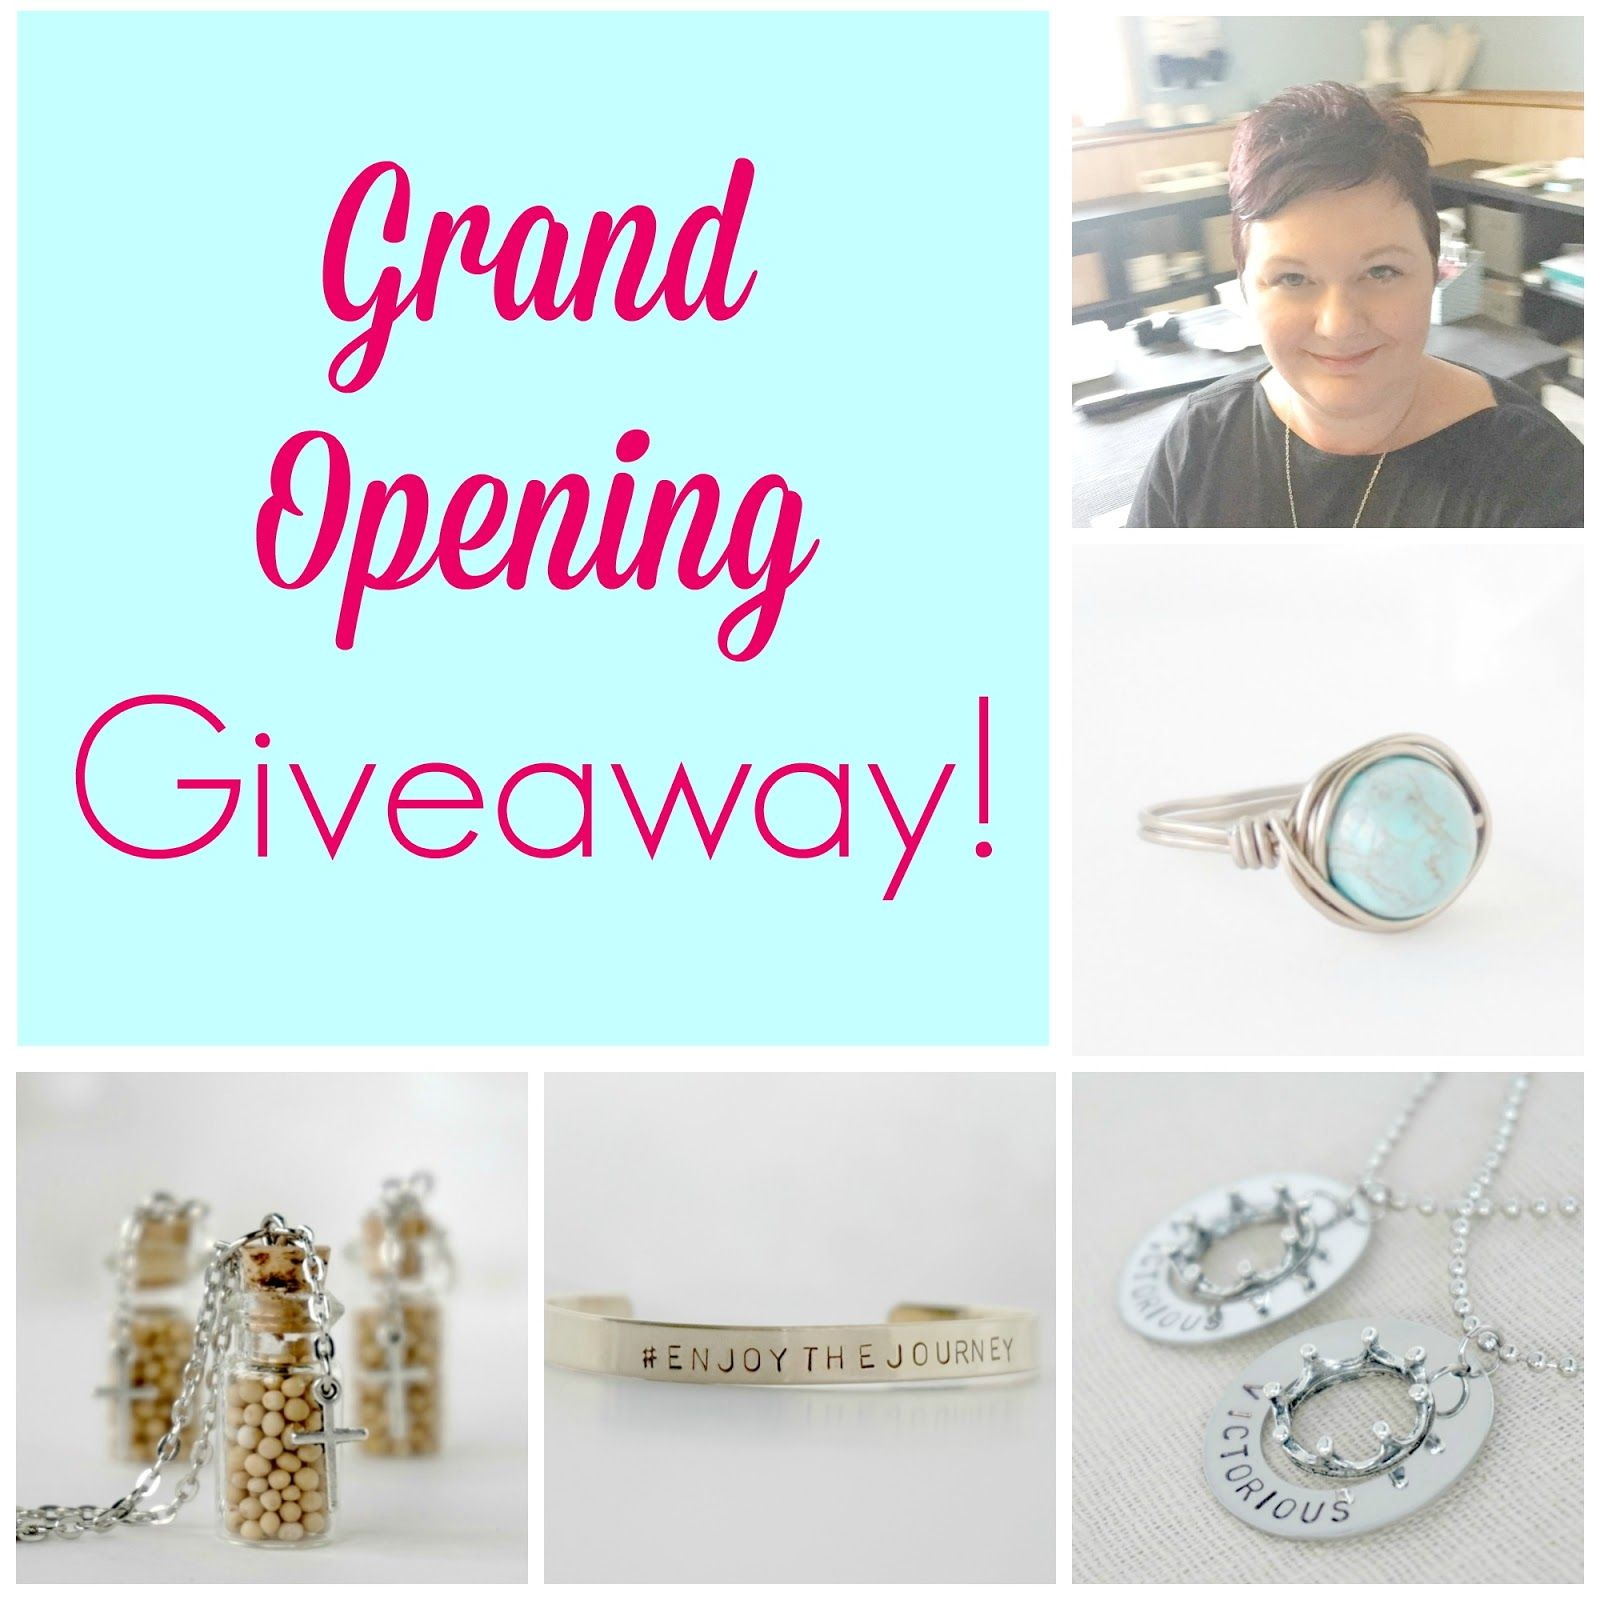 Grand opening gift giveaways